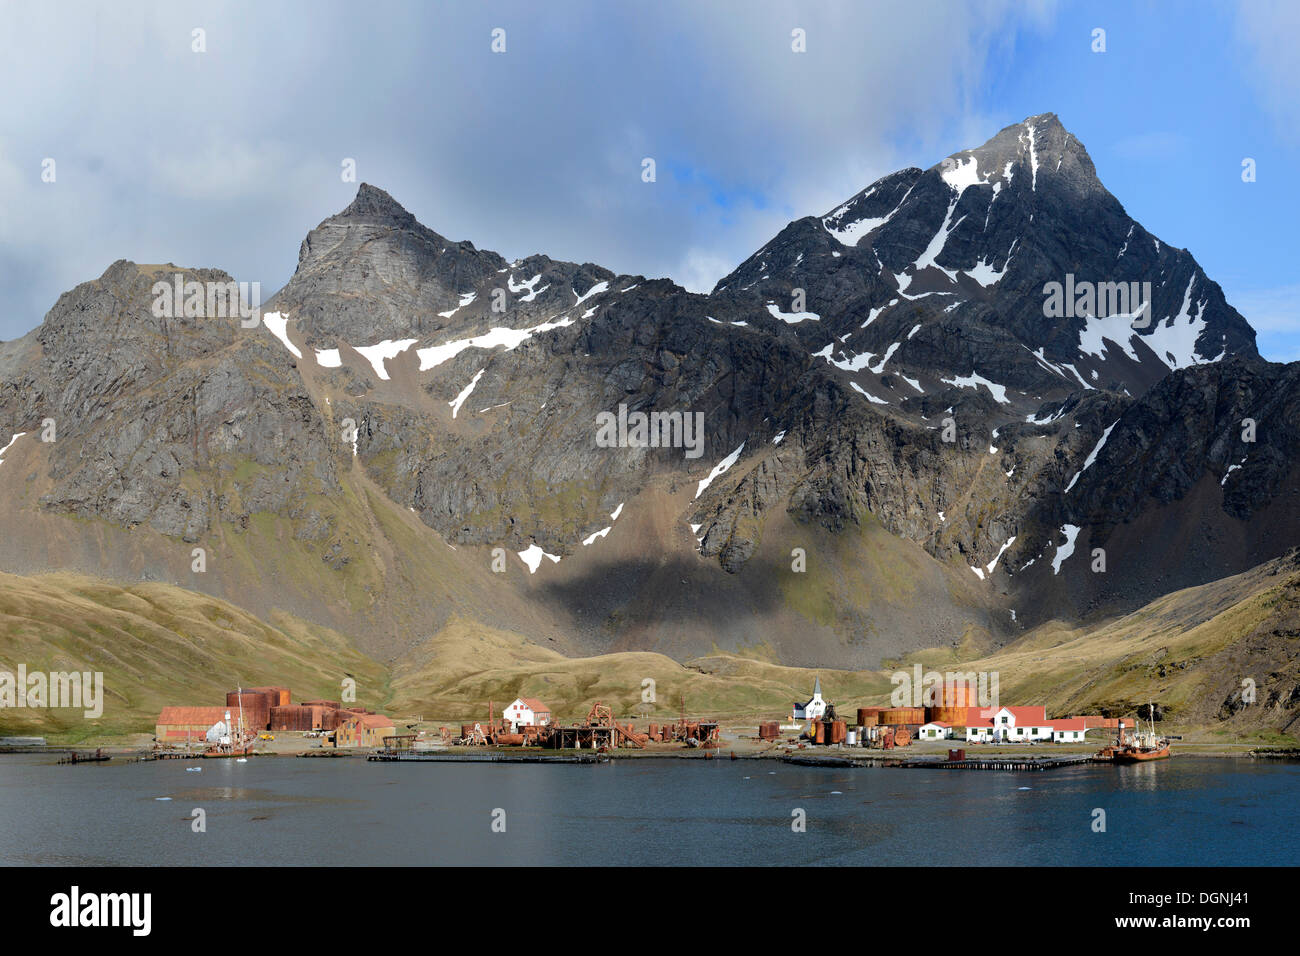 Former Grytviken whaling station, South Georgia and the South Sandwich Islands, United Kingdom - Stock Image